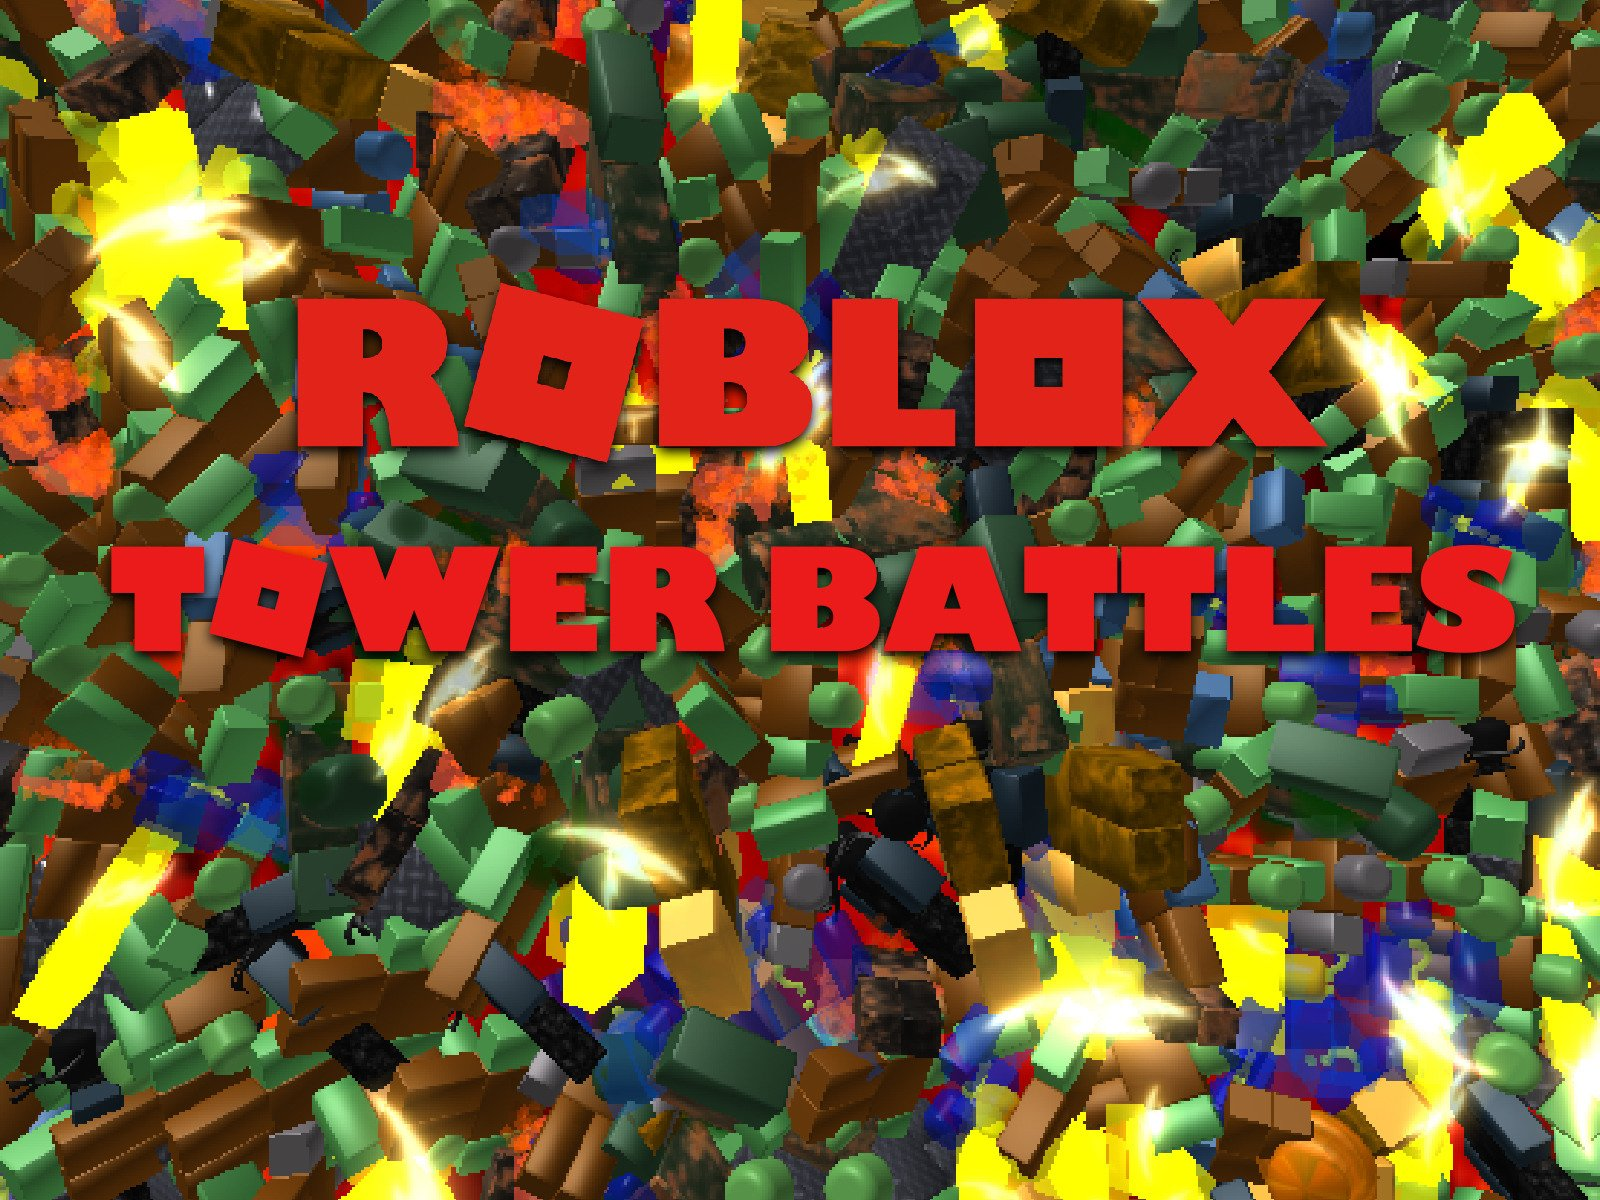 Clip: Roblox Tower Battles